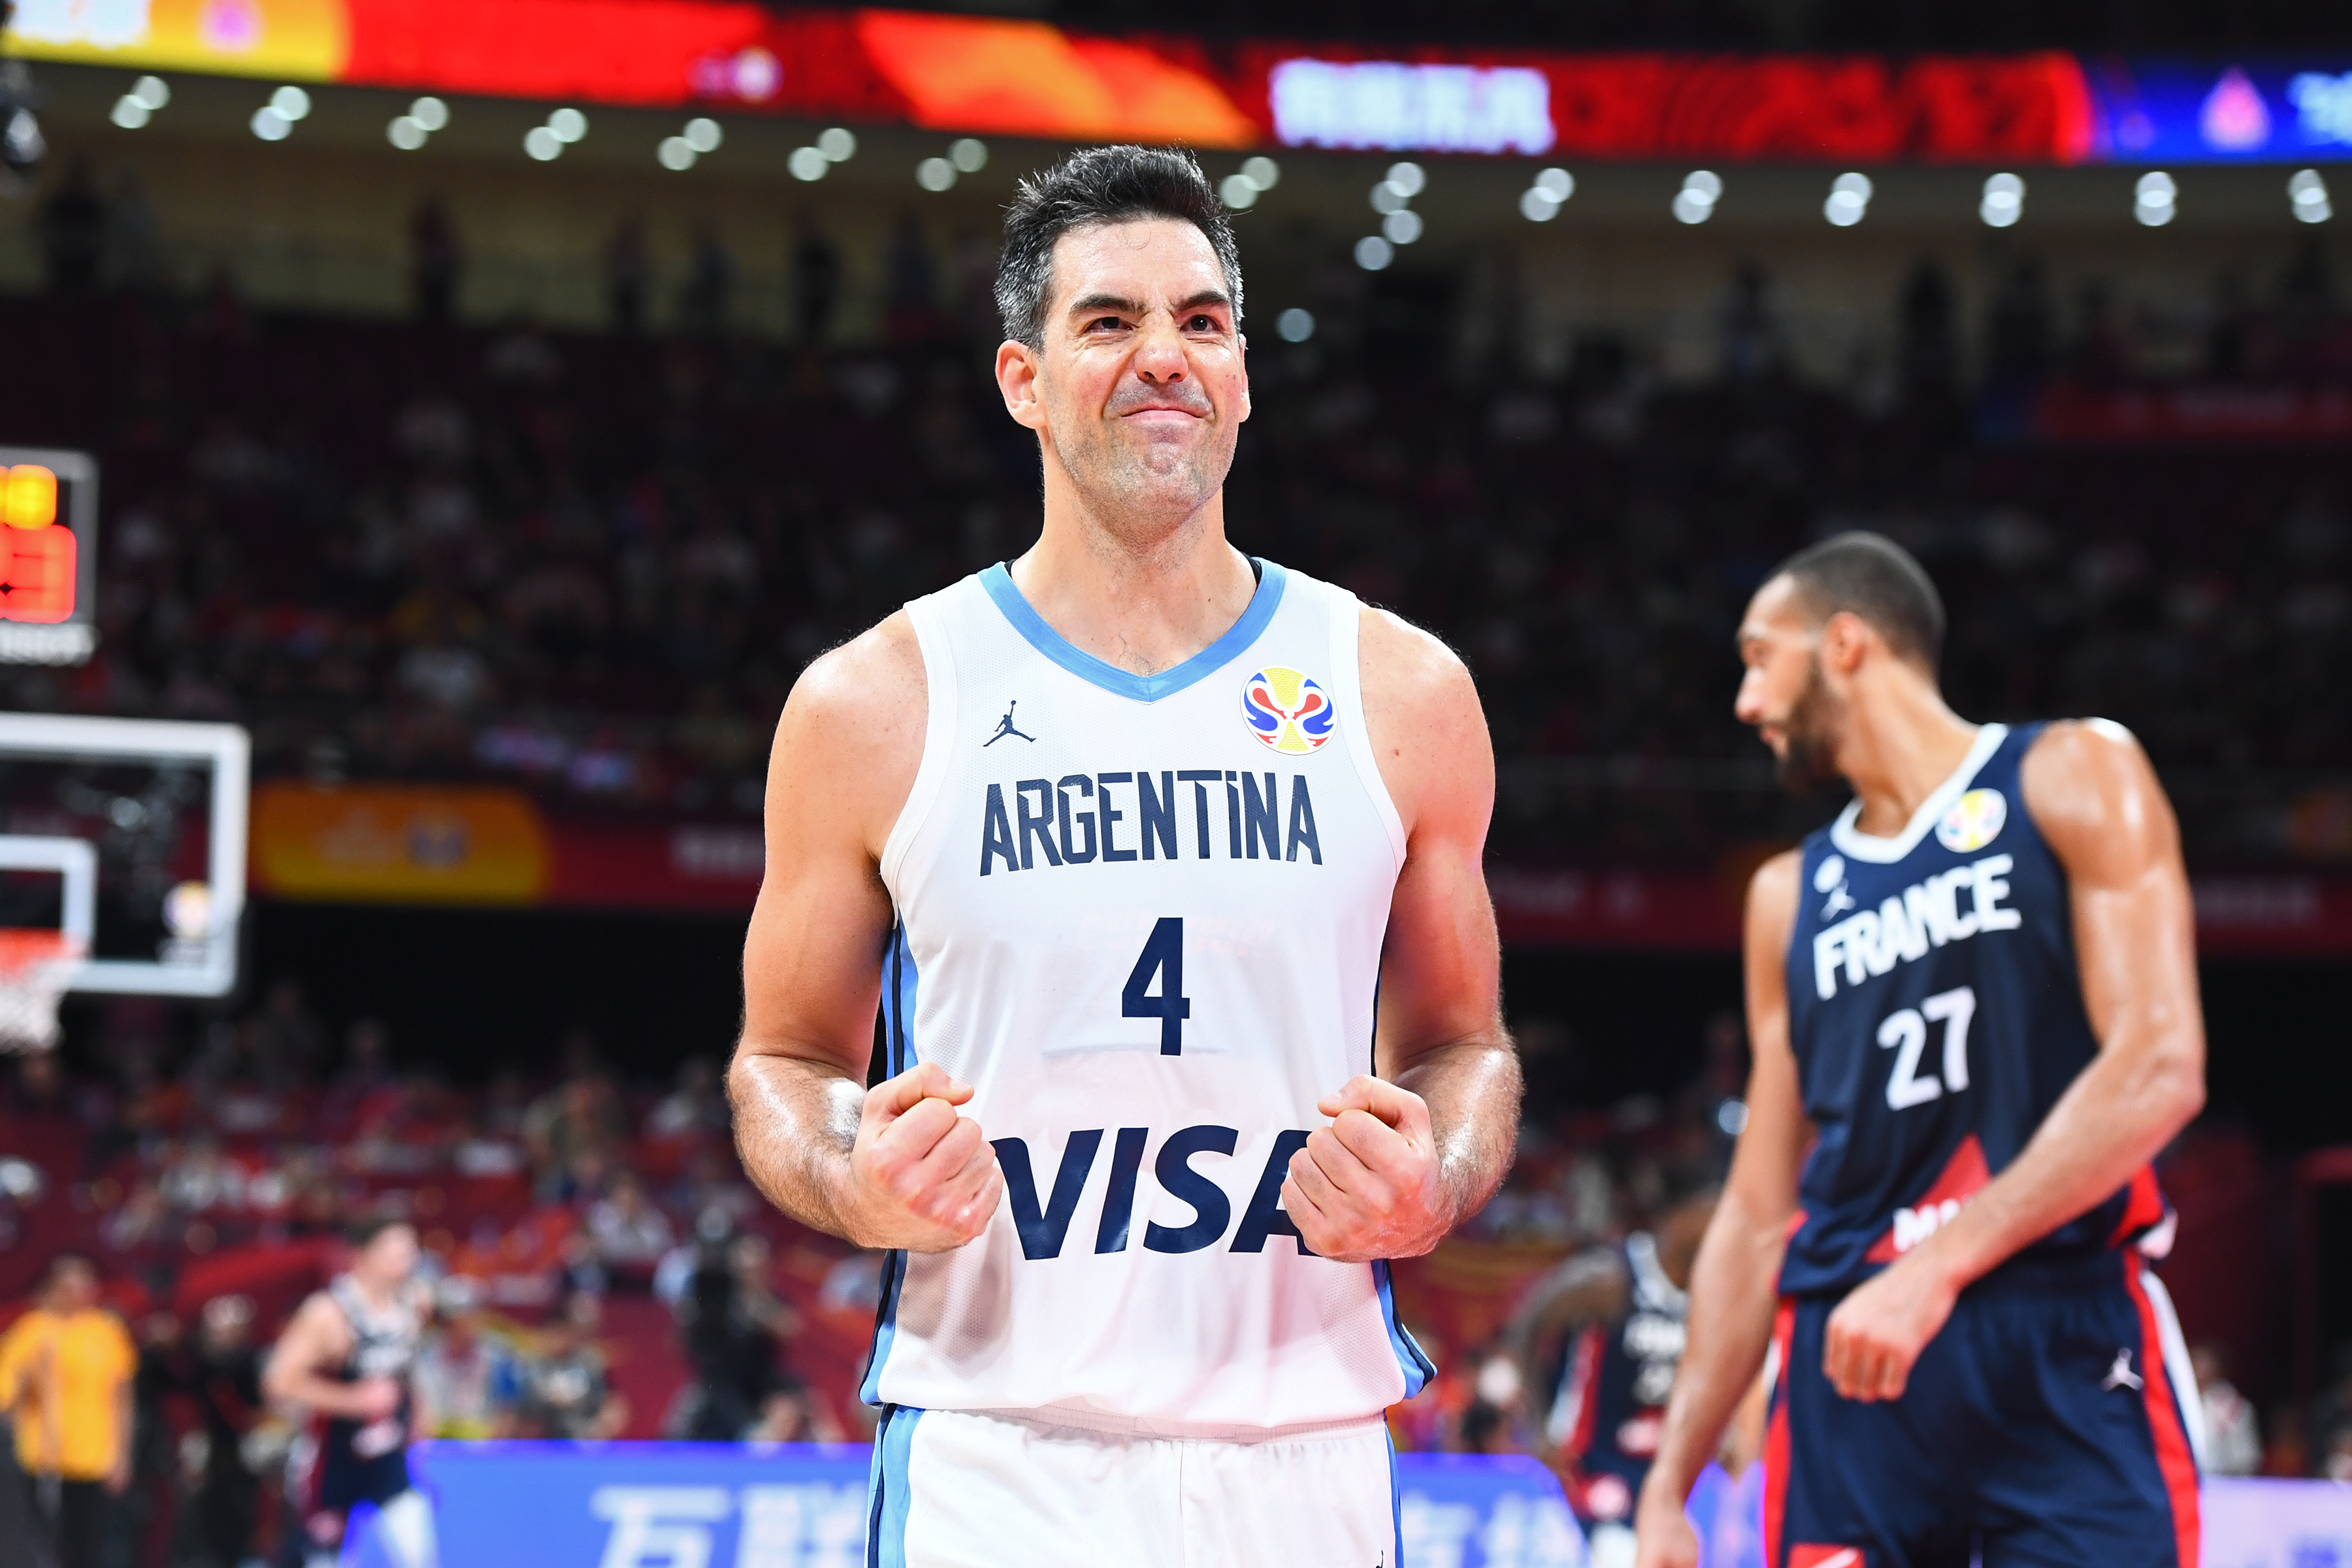 Luis Scola, Marc Gasol and the case for familiarity in international basketball